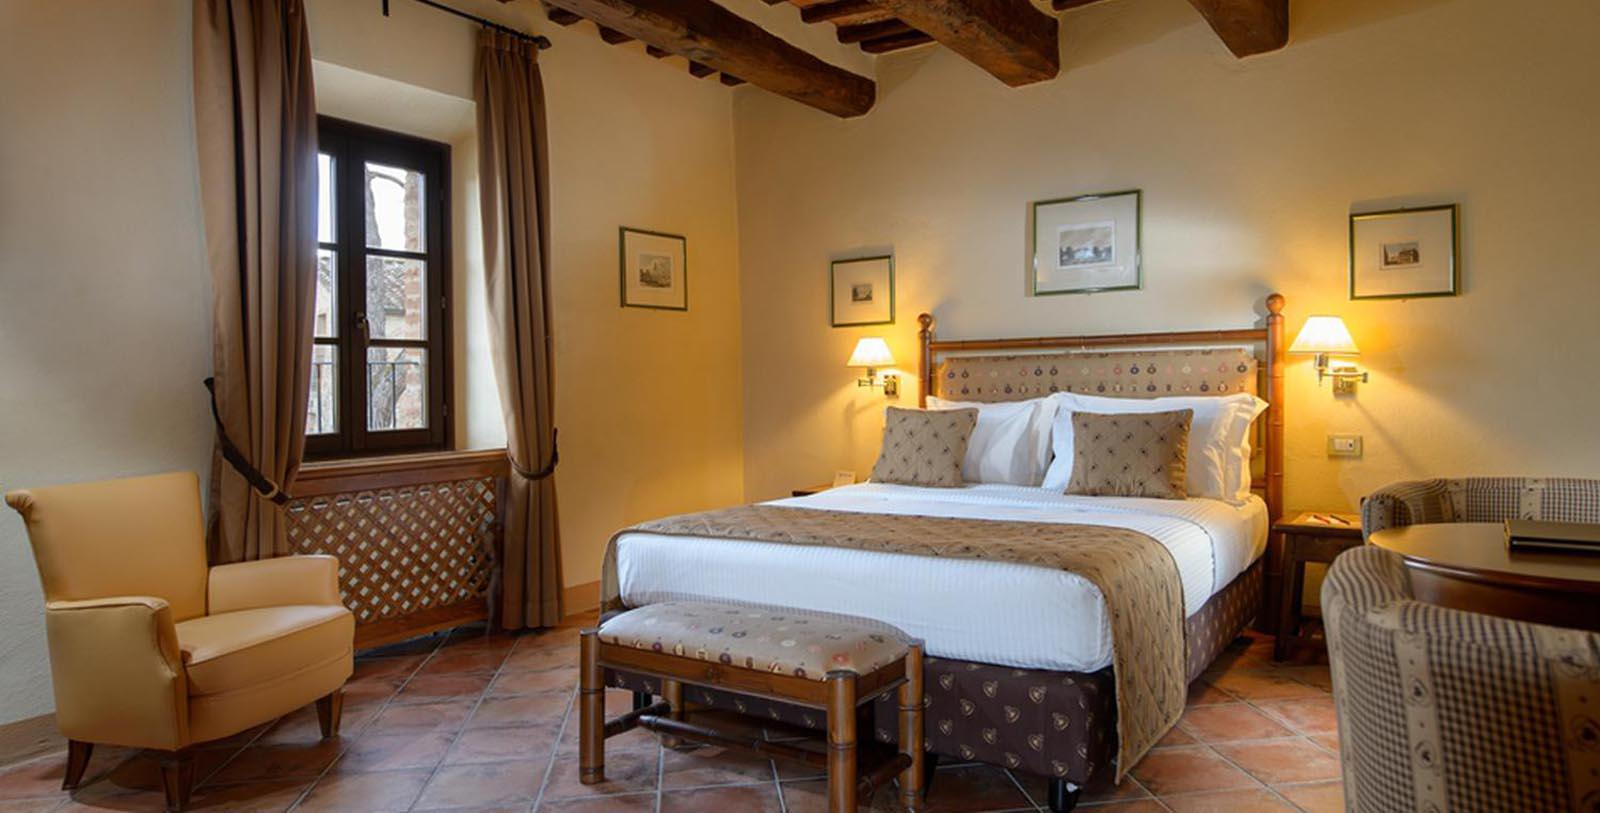 Image of Guestroom Interior La Bagnaia Golf & Spa Resort Siena, Curio Collection by Hilton, 11th Century, Member of Historic Hotels Worldwide, in Siena, Italy, Location